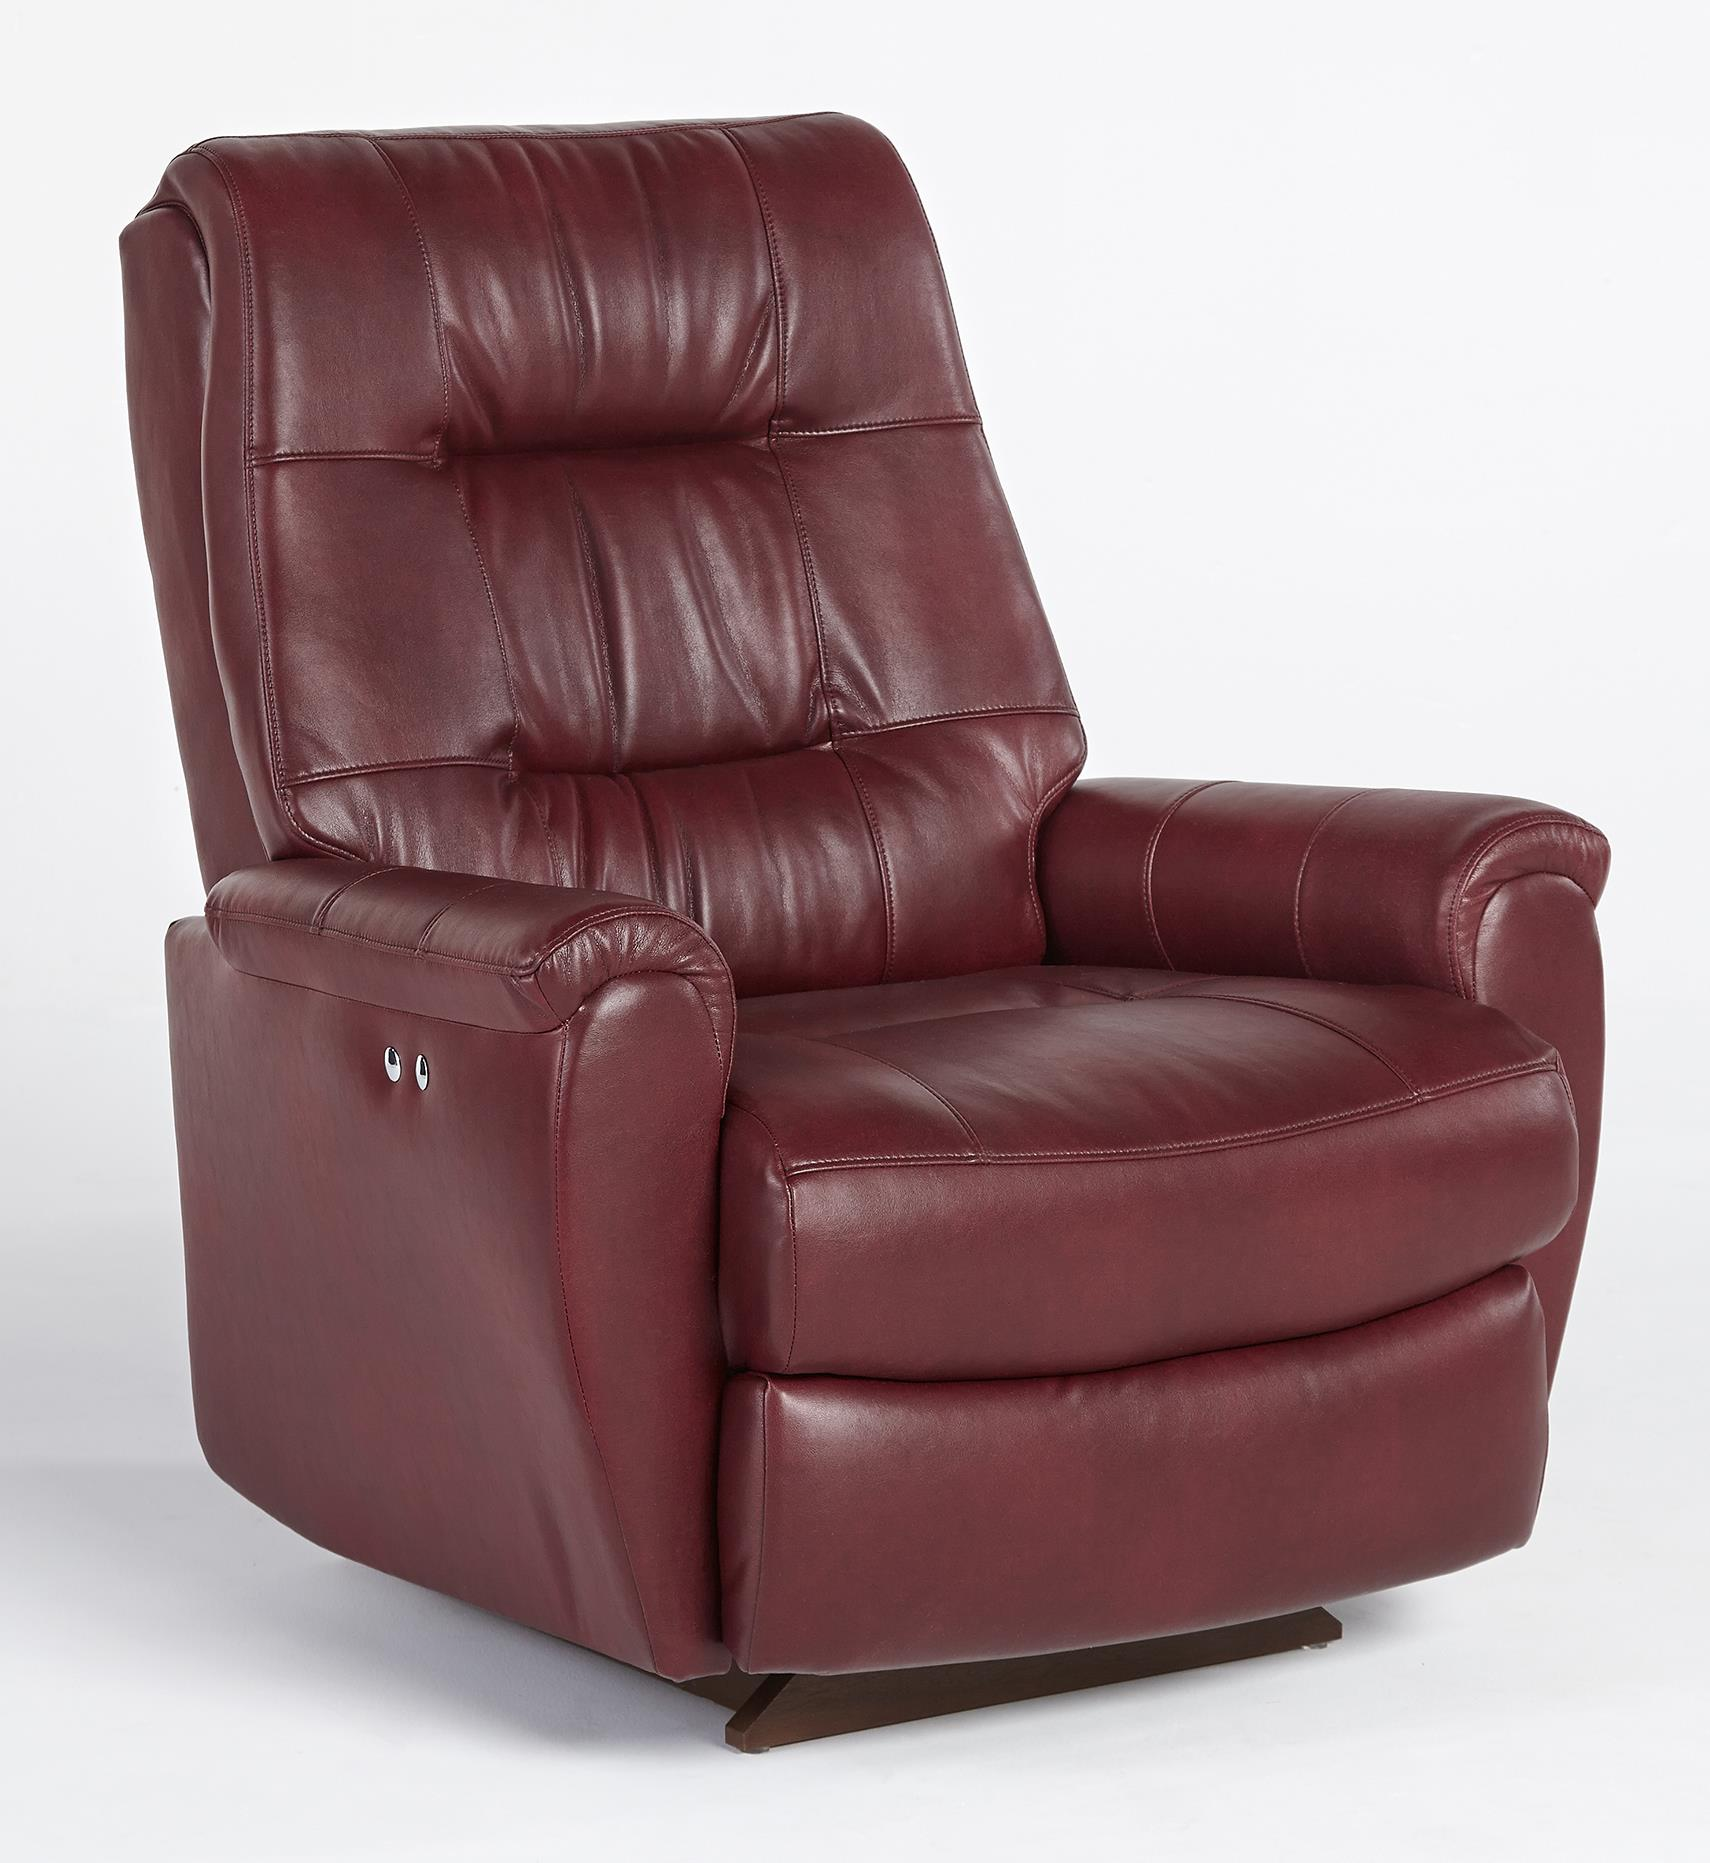 best glider chair huey p newton home furnishings petite recliners felicia swivel